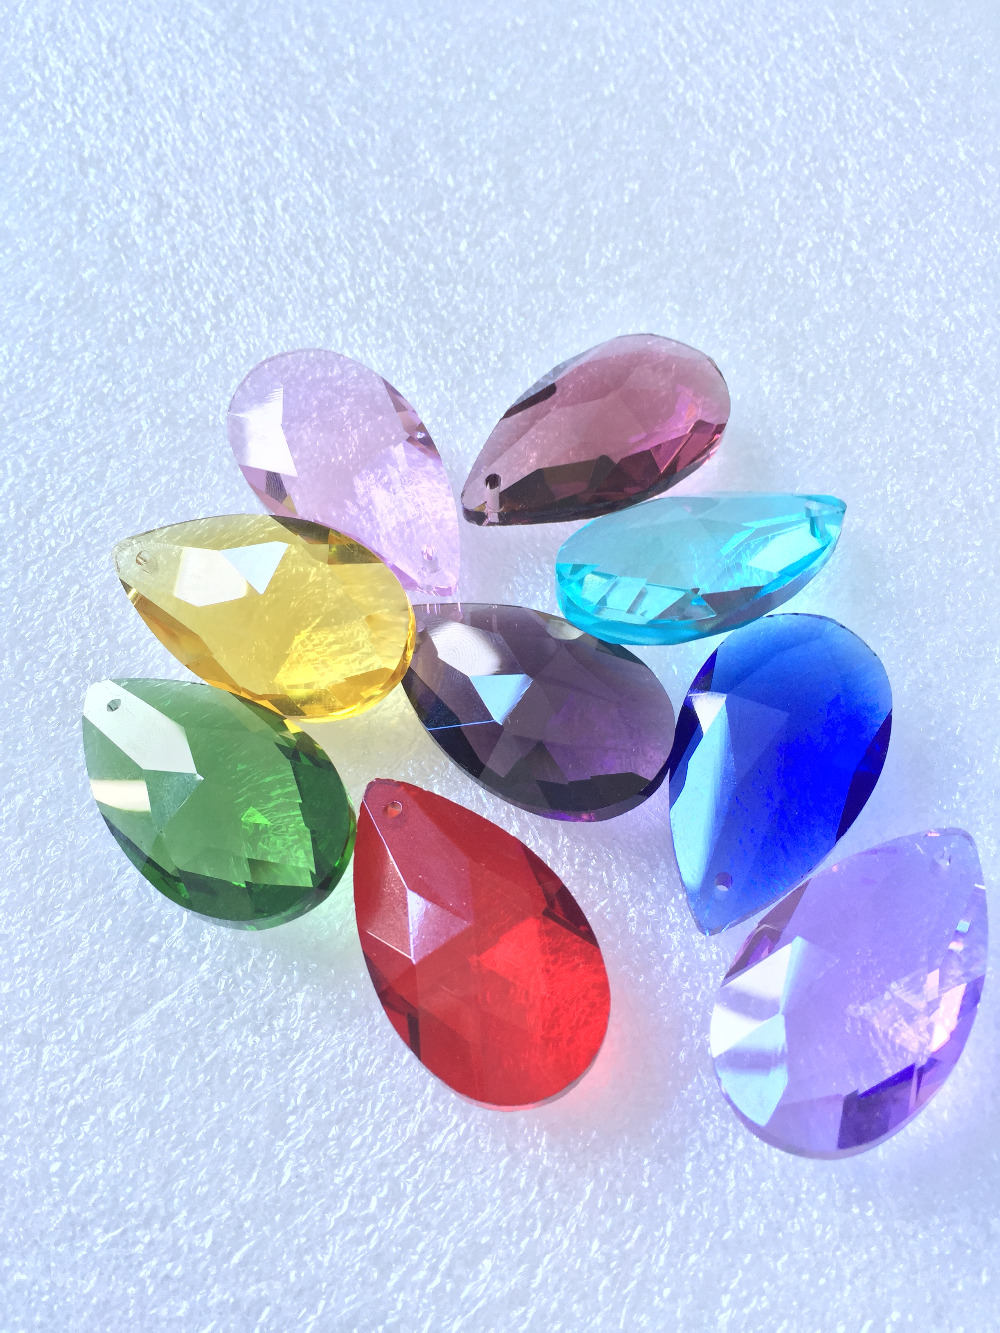 200pcs/lot 38mmx 22mm Mixed Colors ,Fashion Crystal Pear Shape Crystal Chandelier Pendants/Crystal Chandelier Parts,Best Selling<br><br>Aliexpress